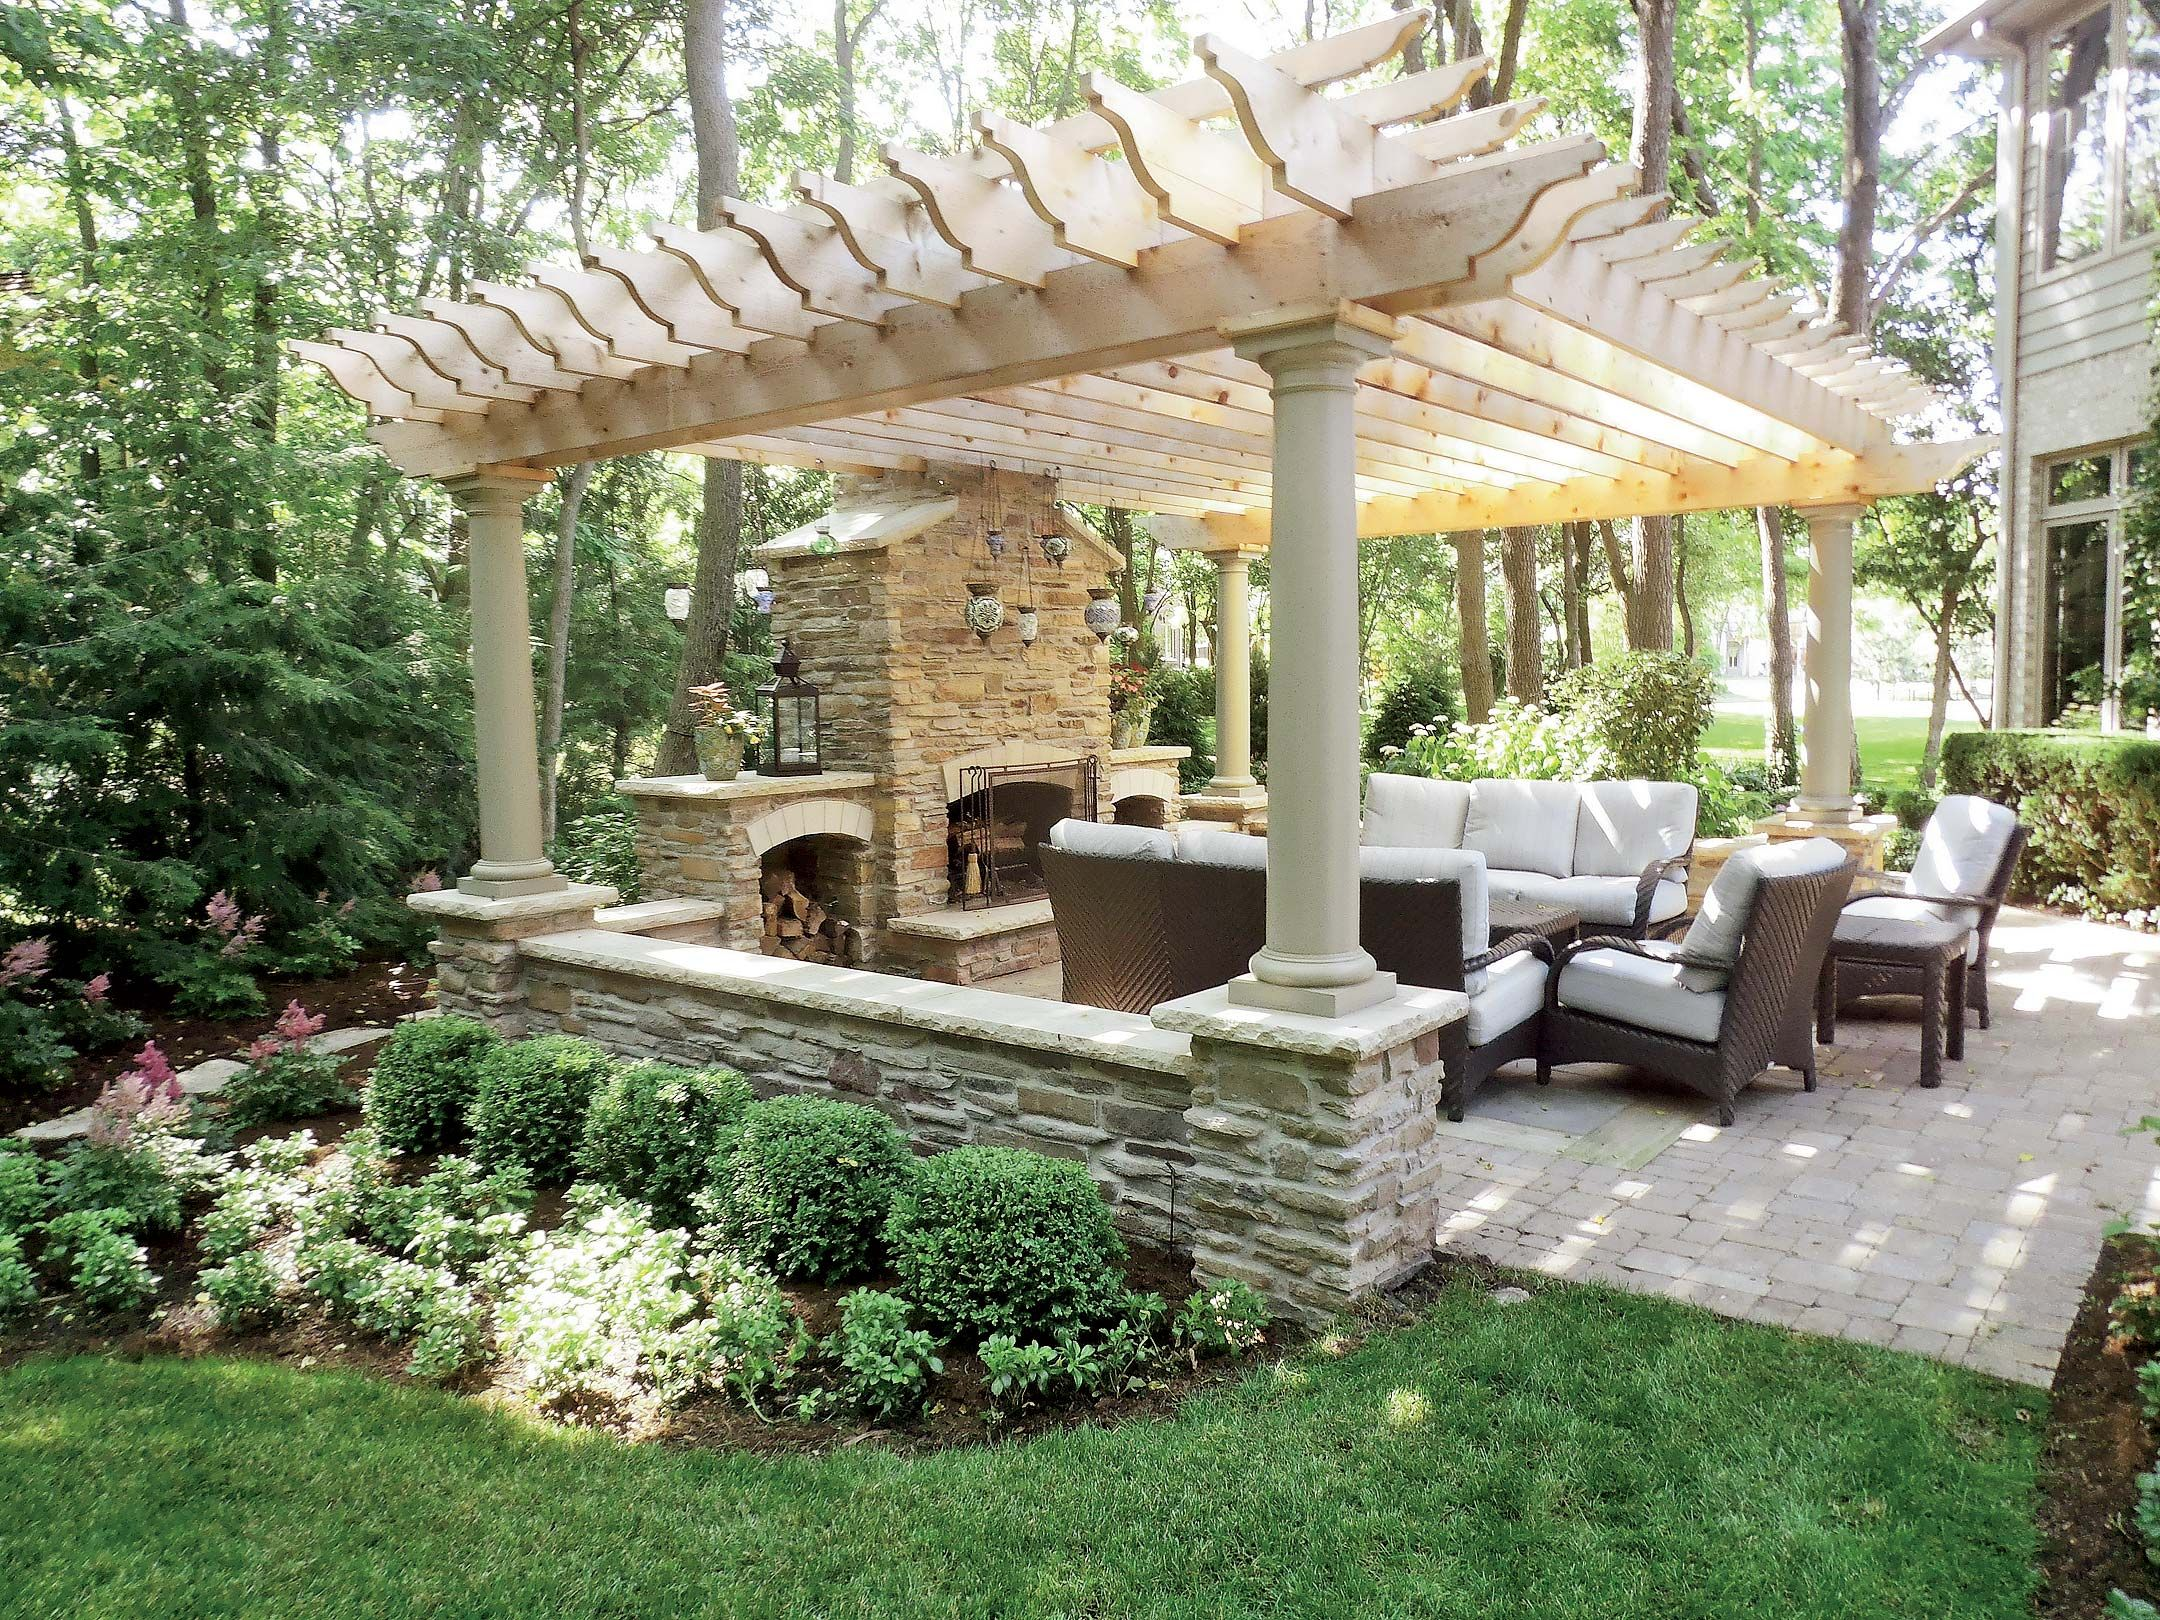 Stonework Accents This Pergola For An Outdoor Seating Area